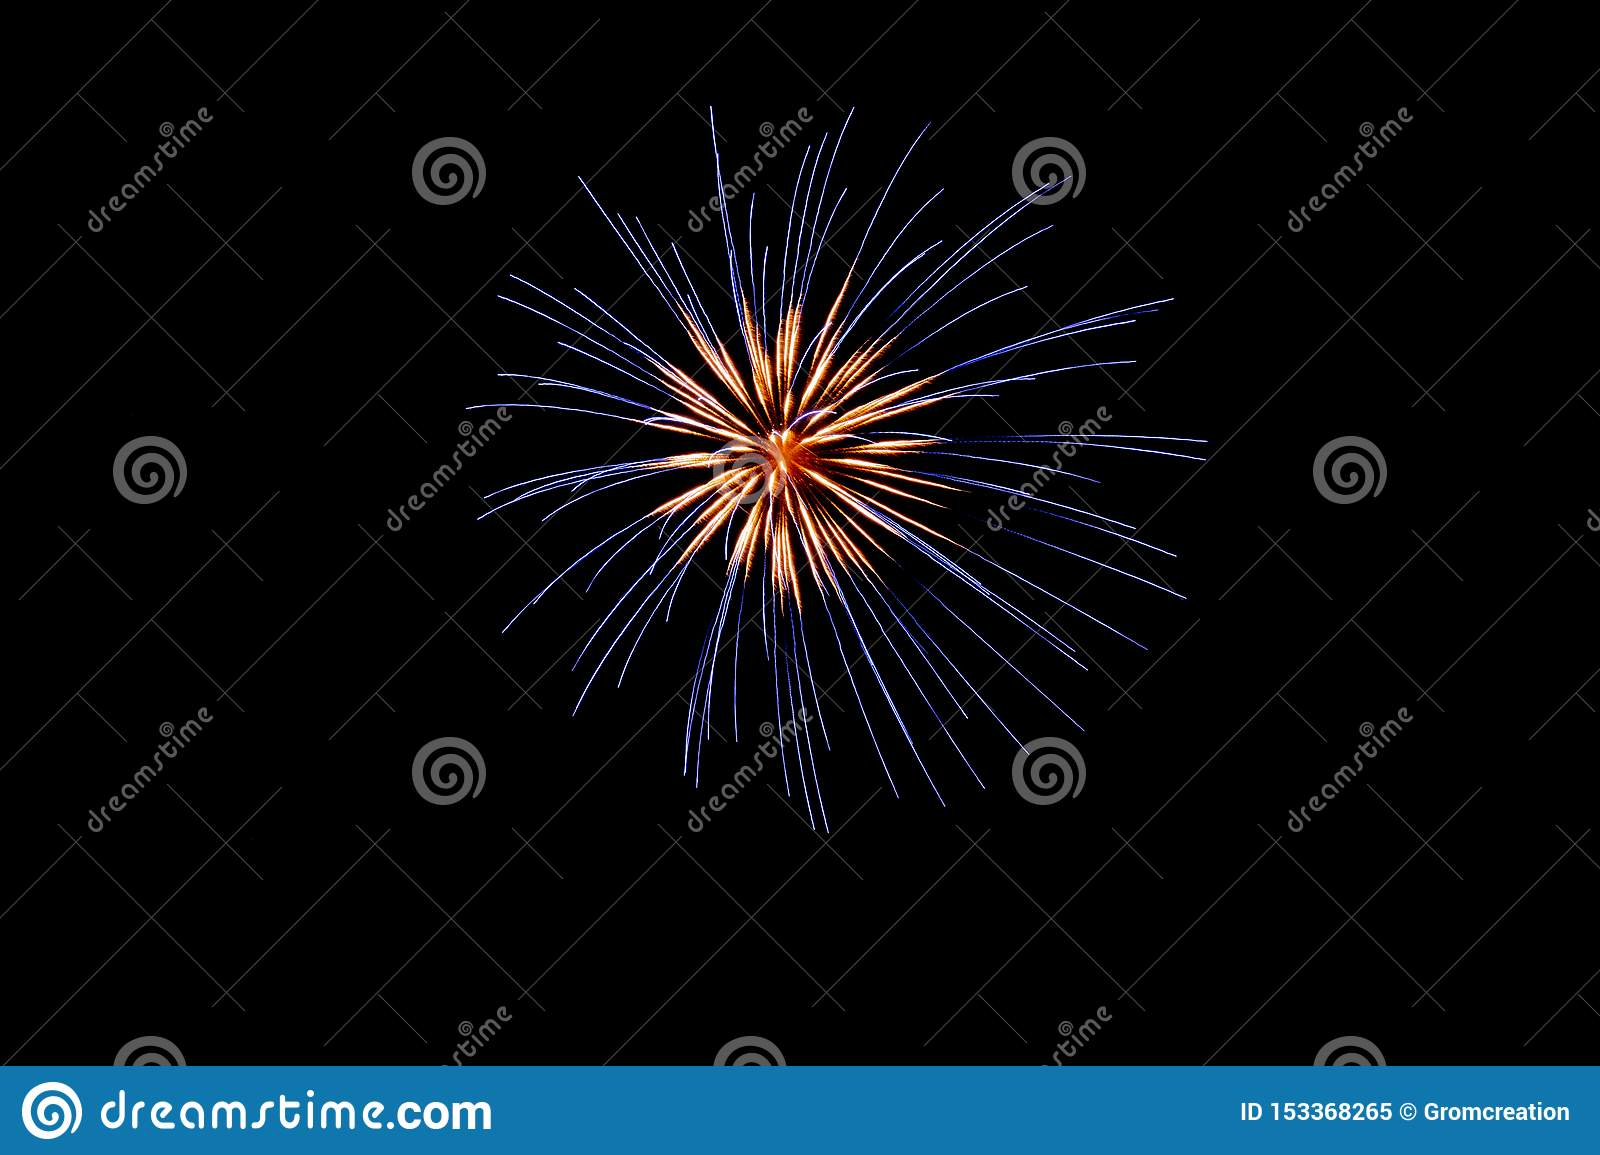 Blue and white pyrotechnic fireworks in the night